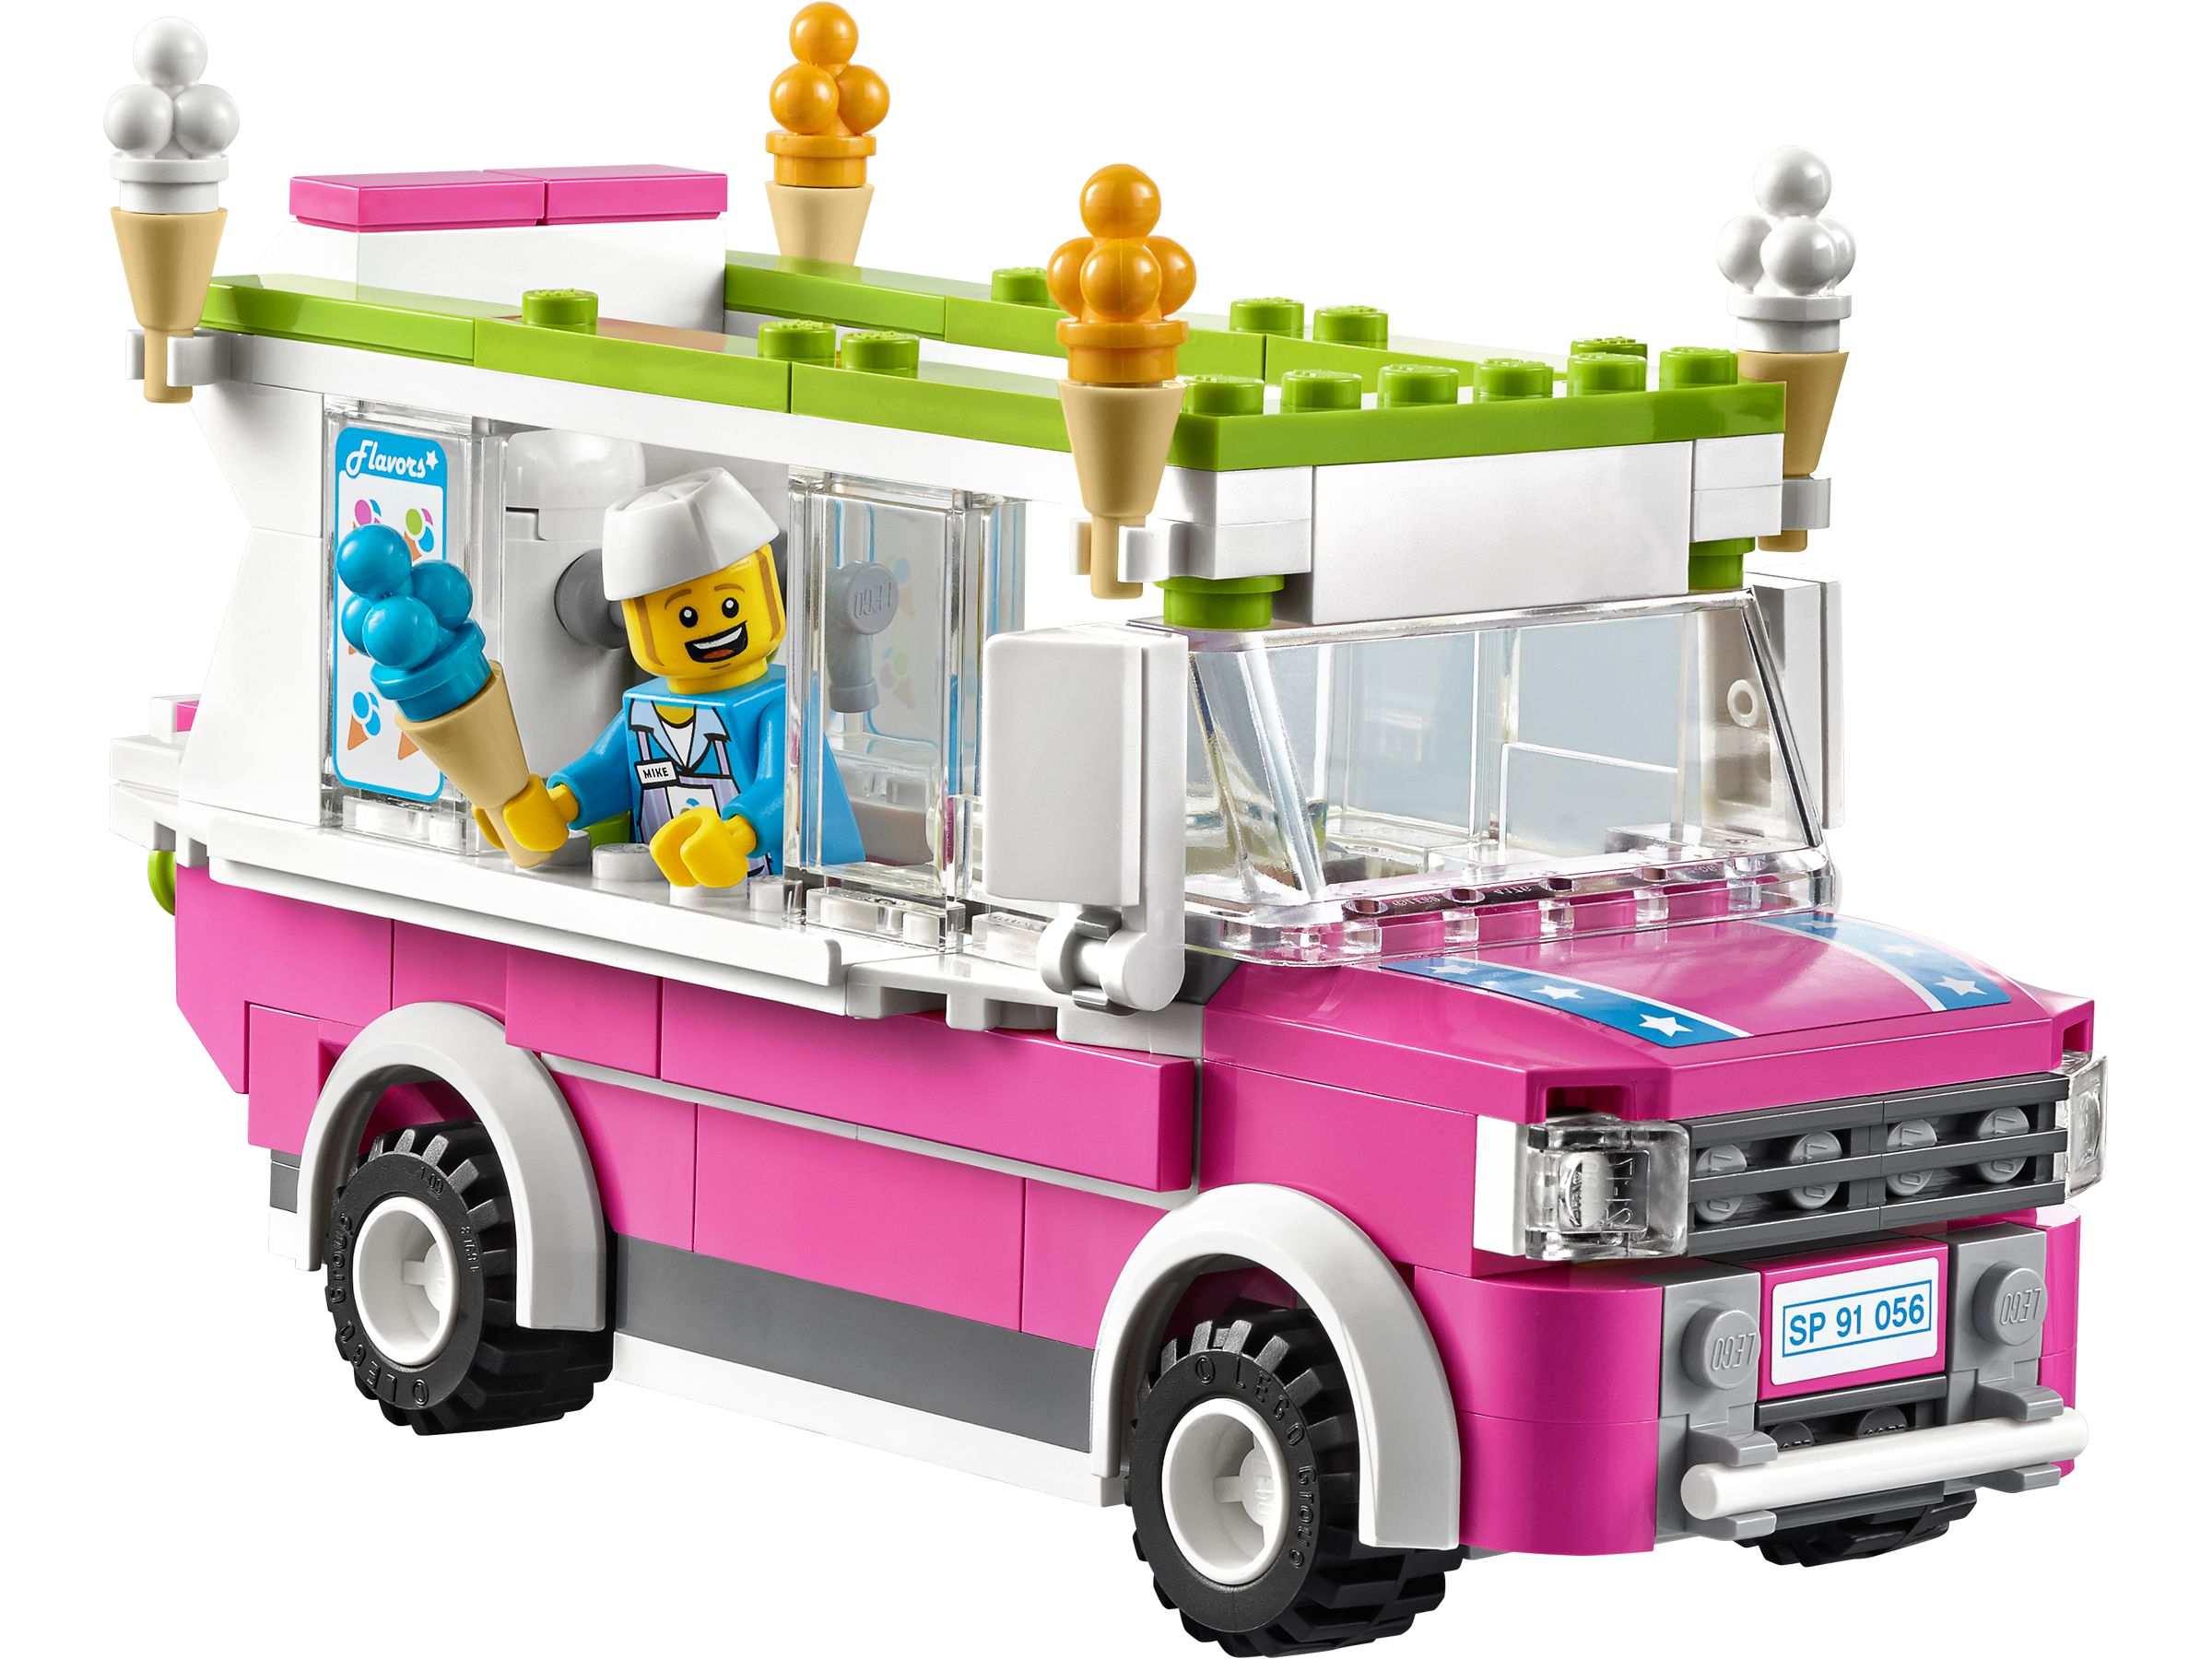 LEGO The LEGO Movie 70804 Eiscremewagen LEGO_70804_alt3.jpg